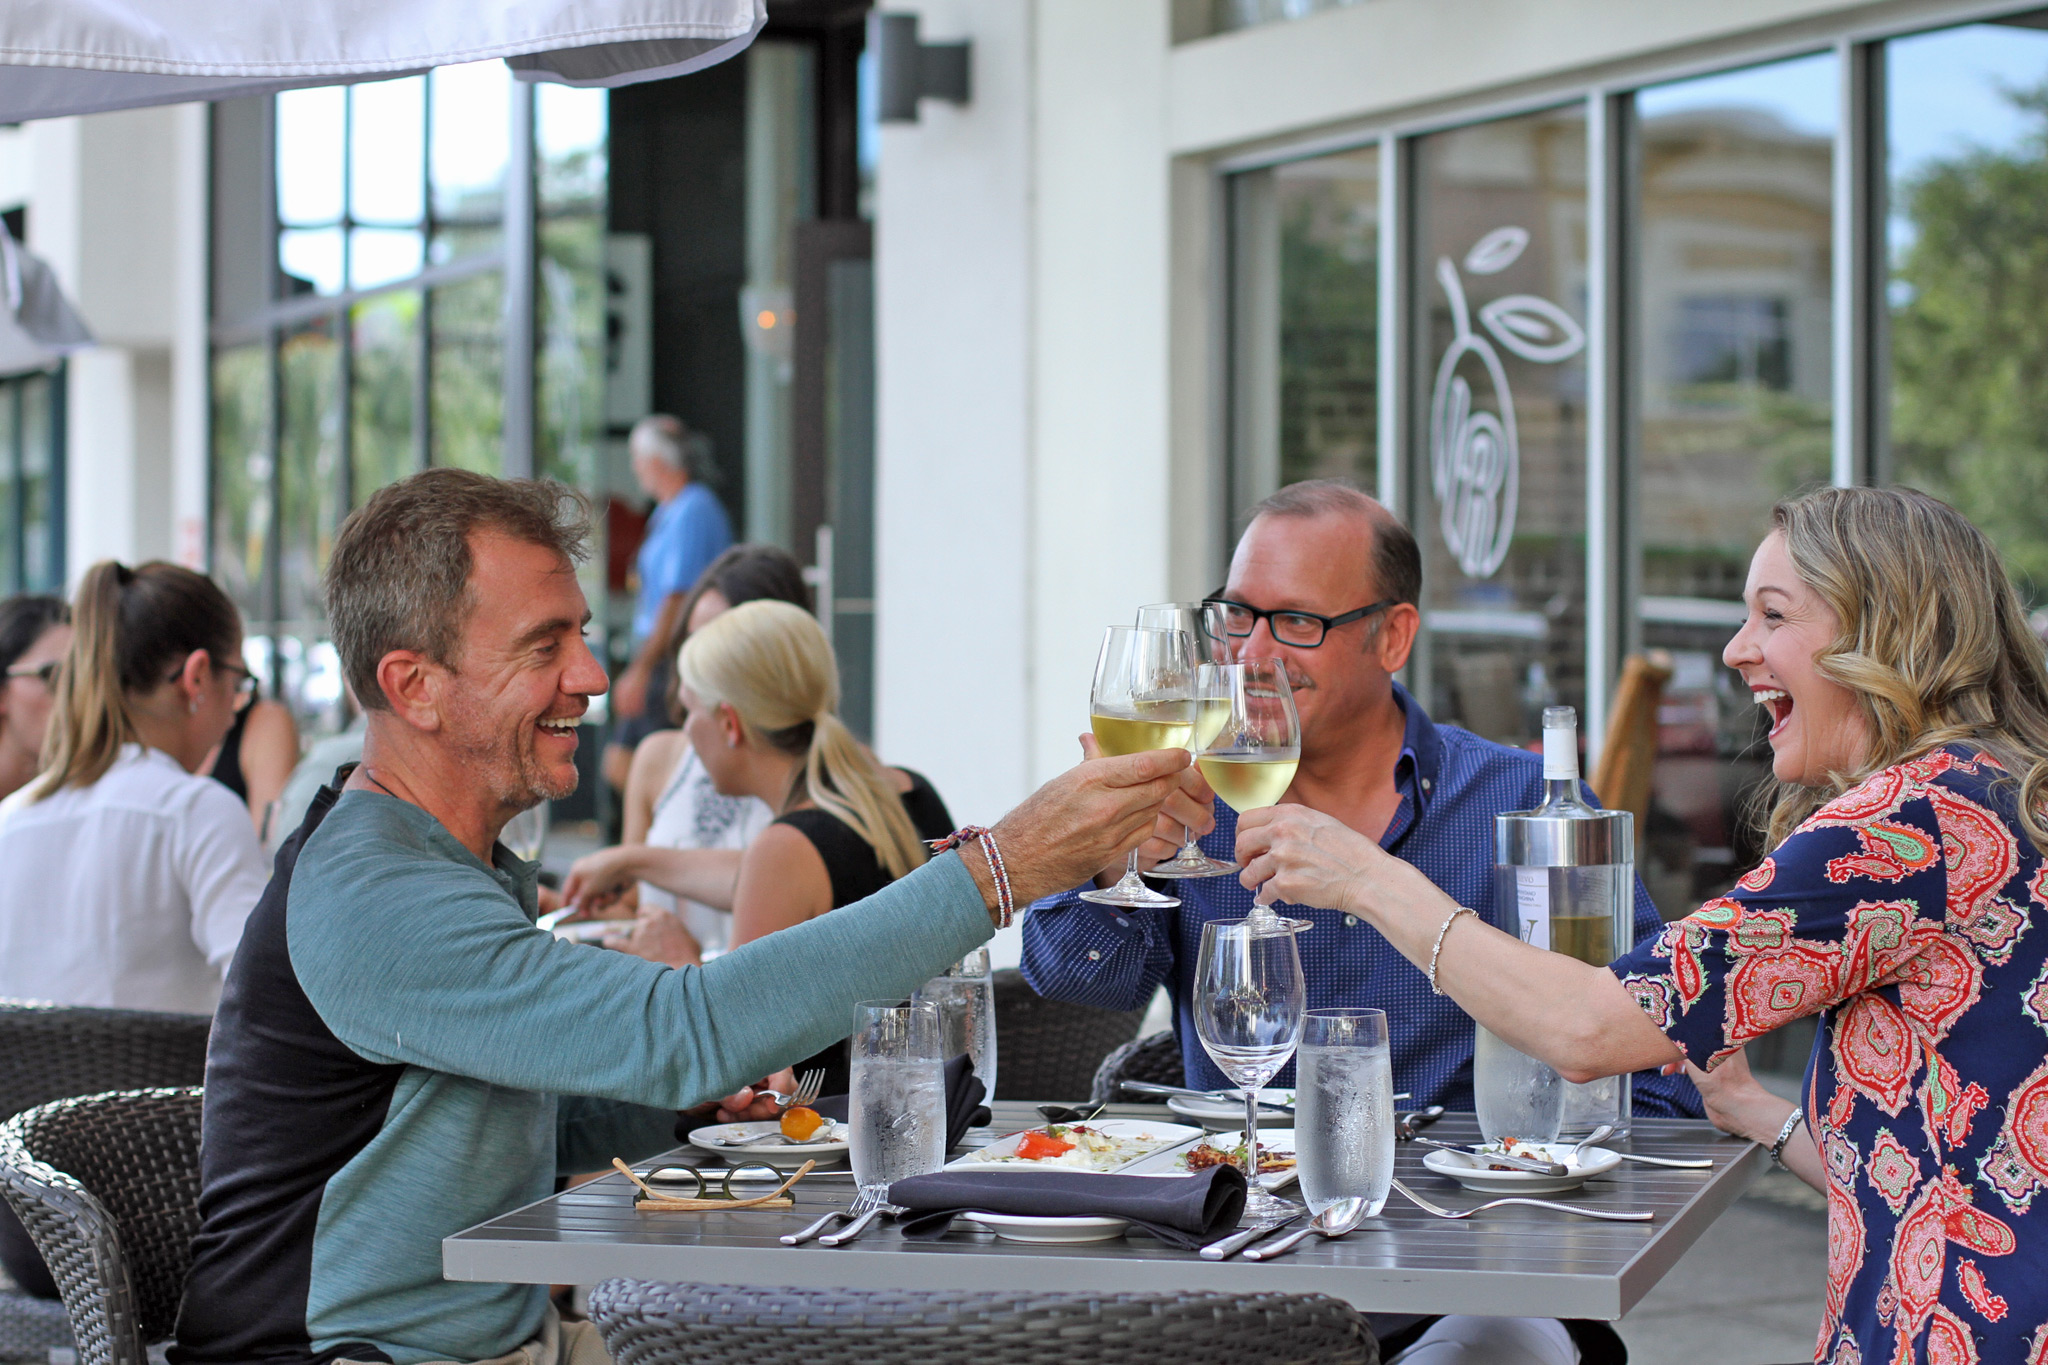 (L-R) Barry Lively, Kevin Godbee, & Lori Brown enjoying primis and outdoor seating at IL Ritorno